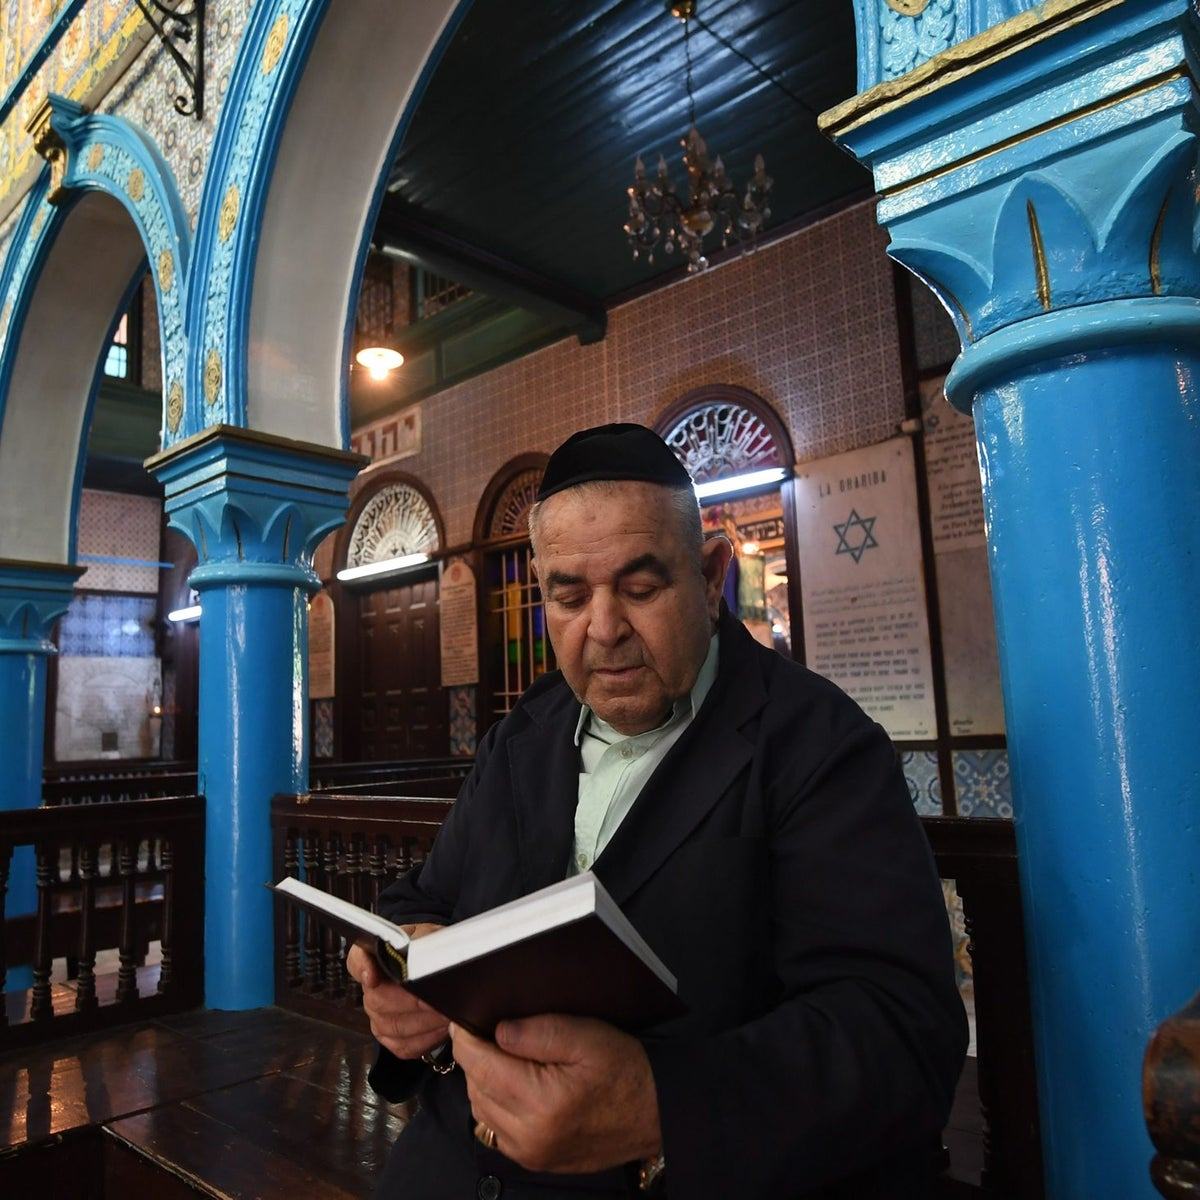 Pires Trabelsi, the president of the Ghriba synagogue, reads the Torah on May 1, 2018 in the Tunisian resort island of Djerba, one day before of the annual Jewish pilgrimage to the synagogue.